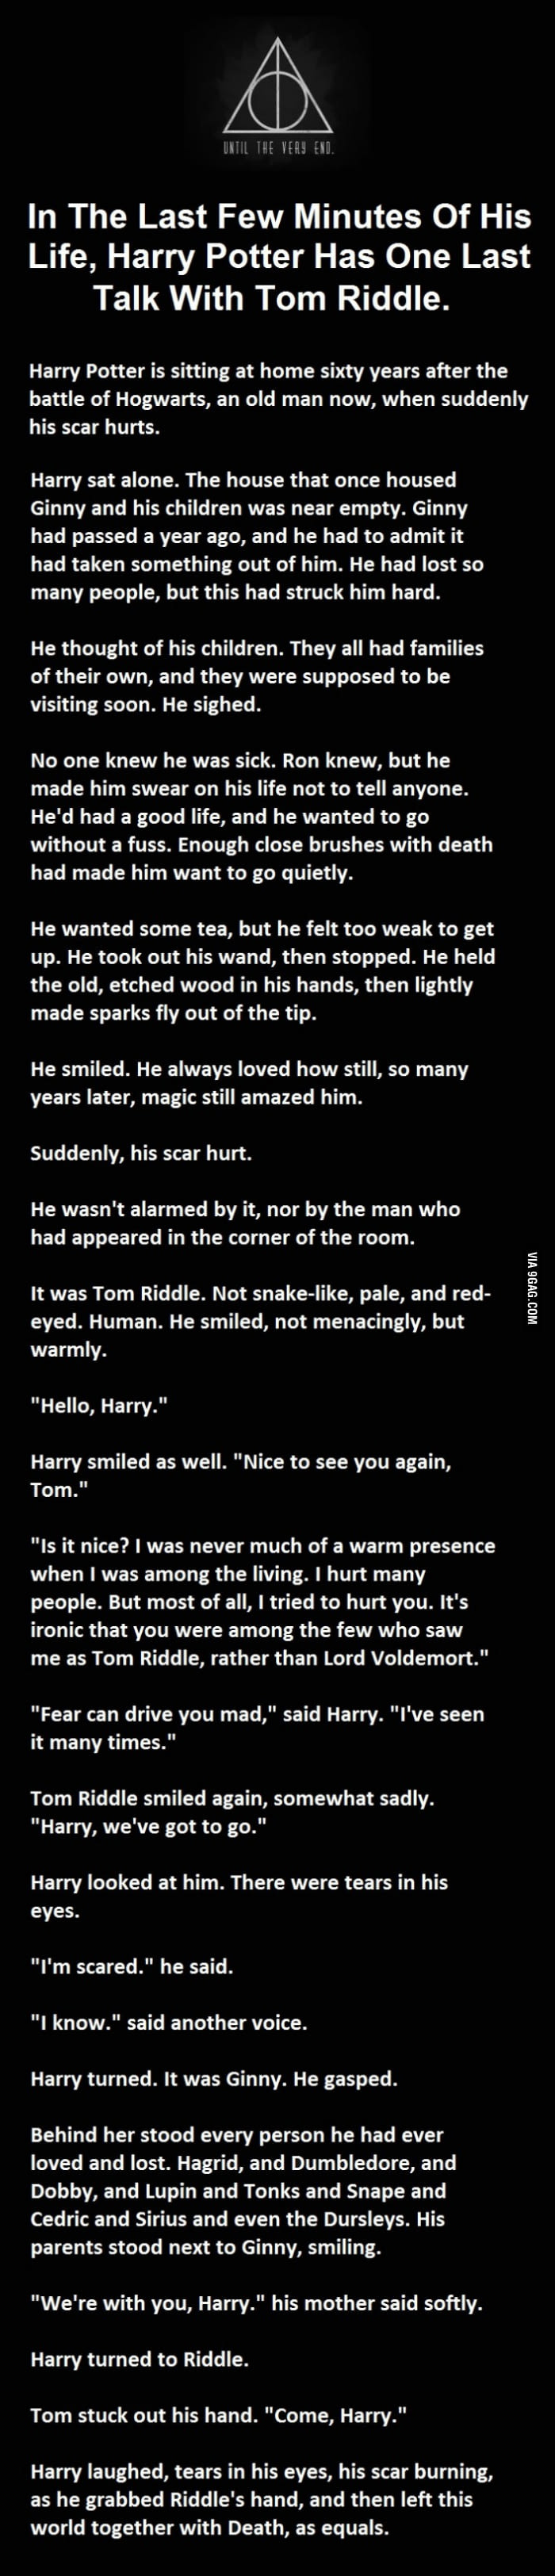 Are You Crying At The End Of This?